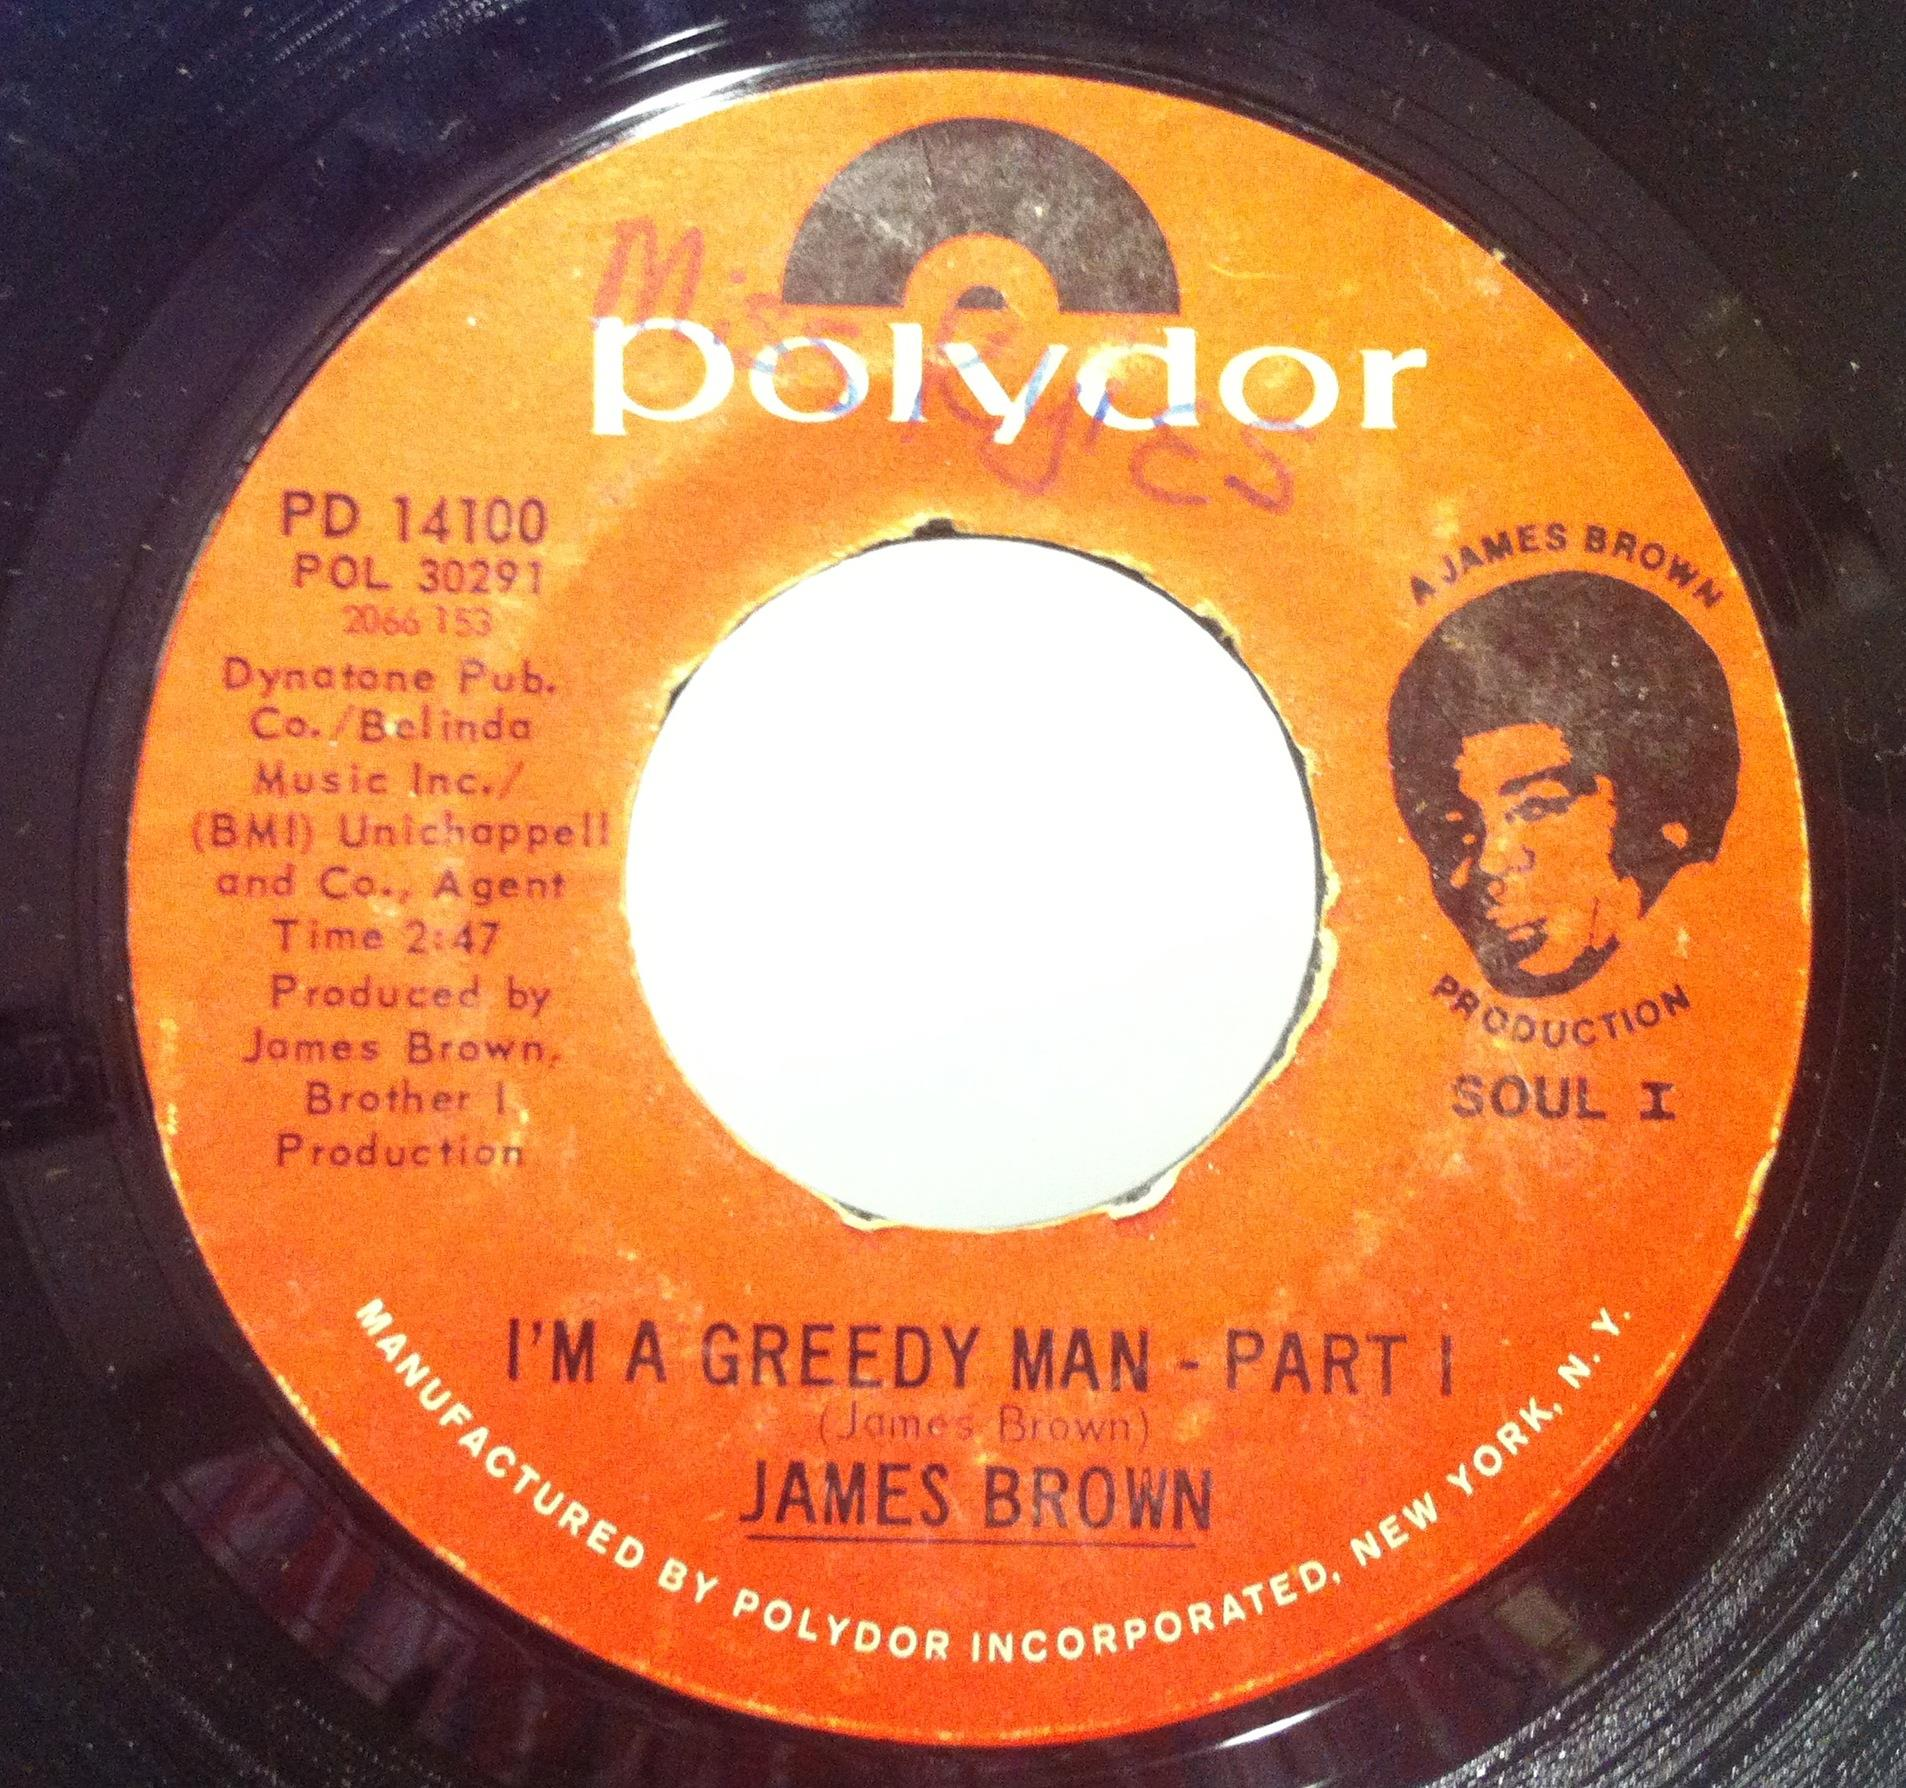 7quot James Brown I'm A Greedy Man Part 1 And 2 Vg Pd 14100 Vinyl 45 Record i'm A Greedy Man P